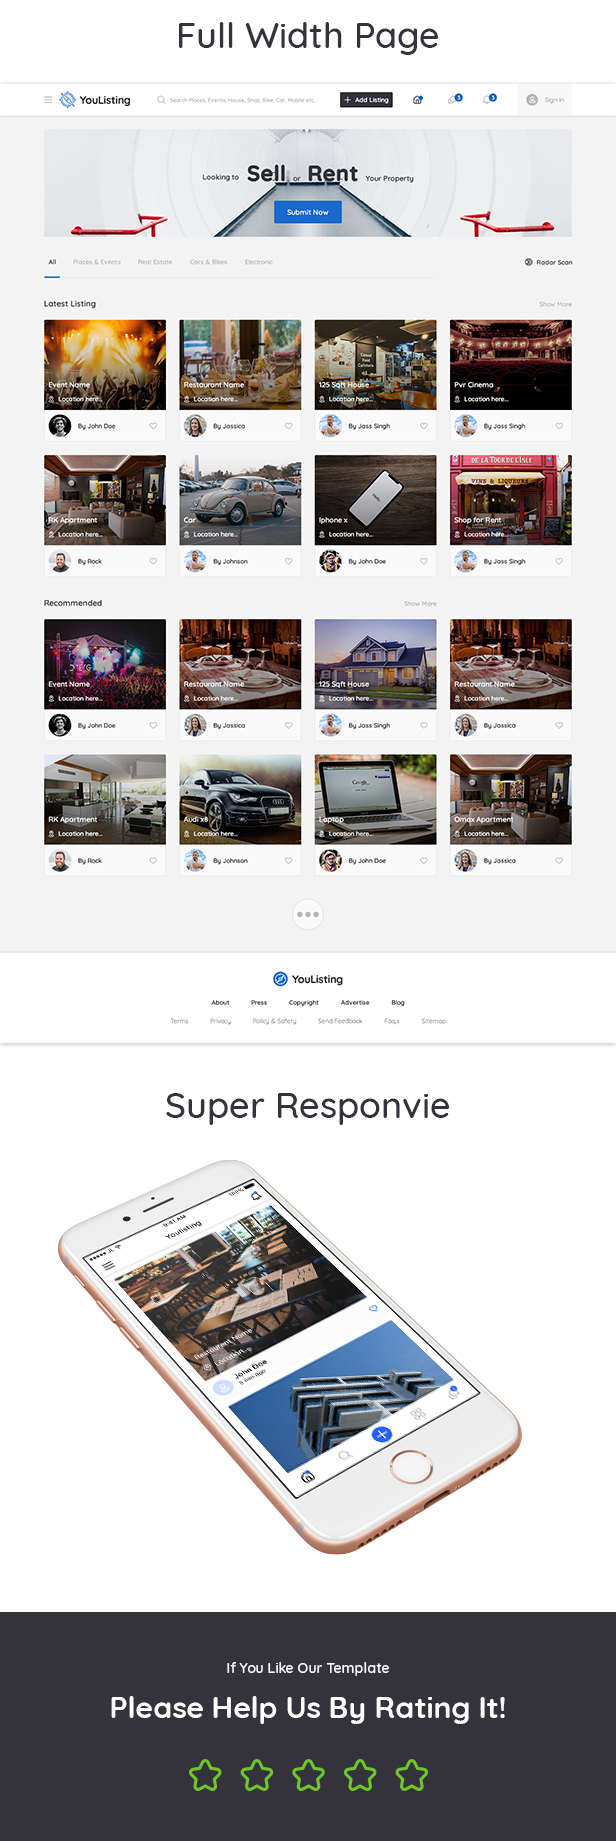 YouListing - Classified Listing and Directory Social Networking PSD Template - 9